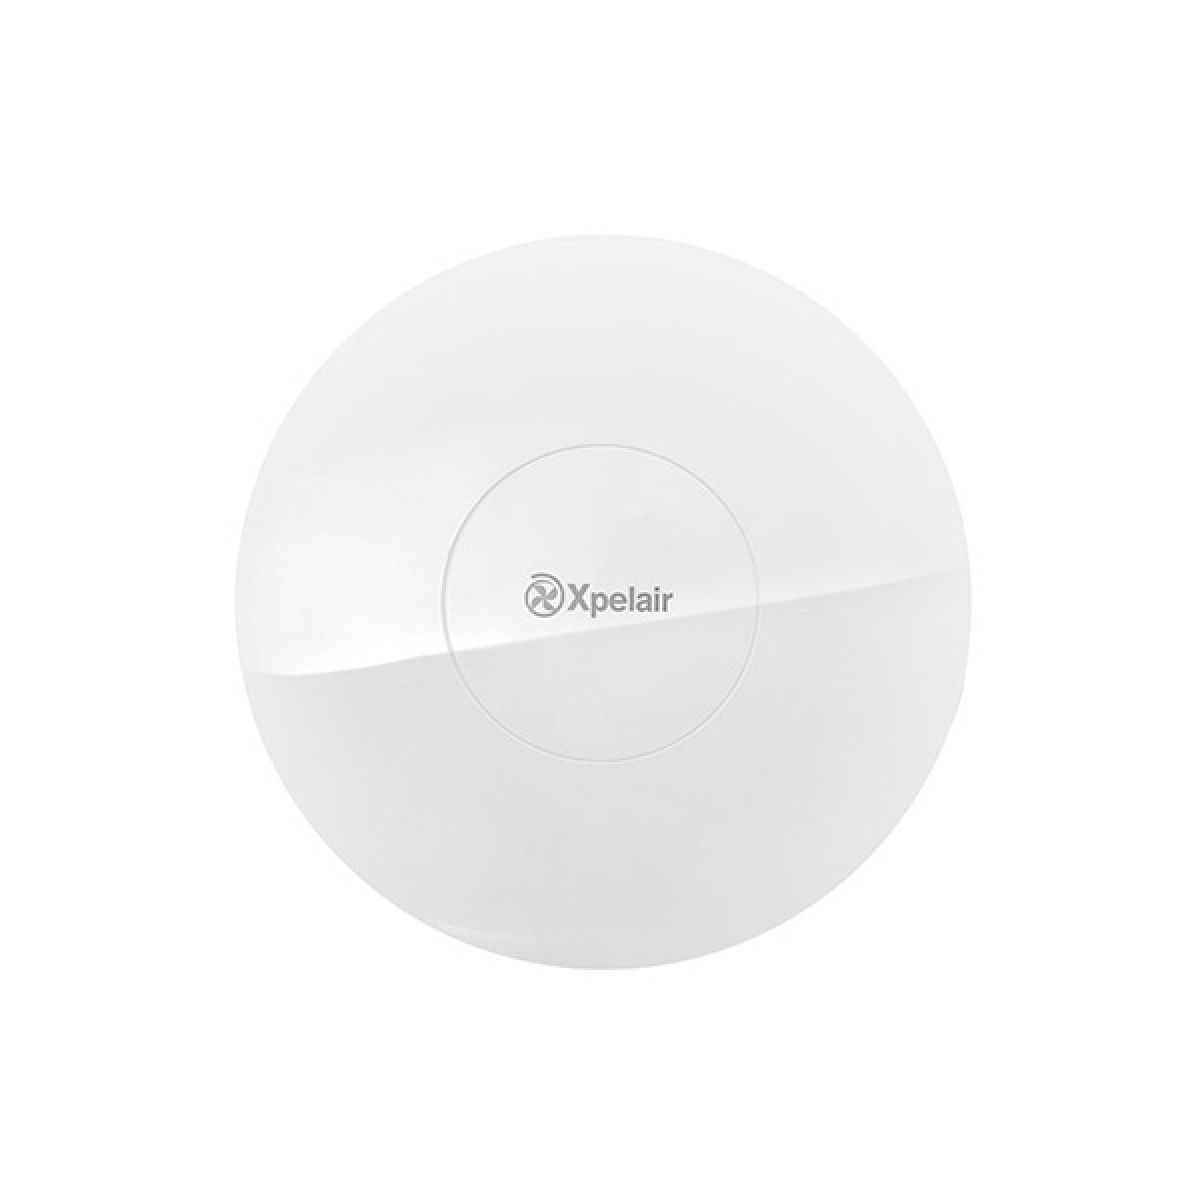 Xpelair Simply Silent Contour Round Bathroom Fan with Pullcord 100mm - Front